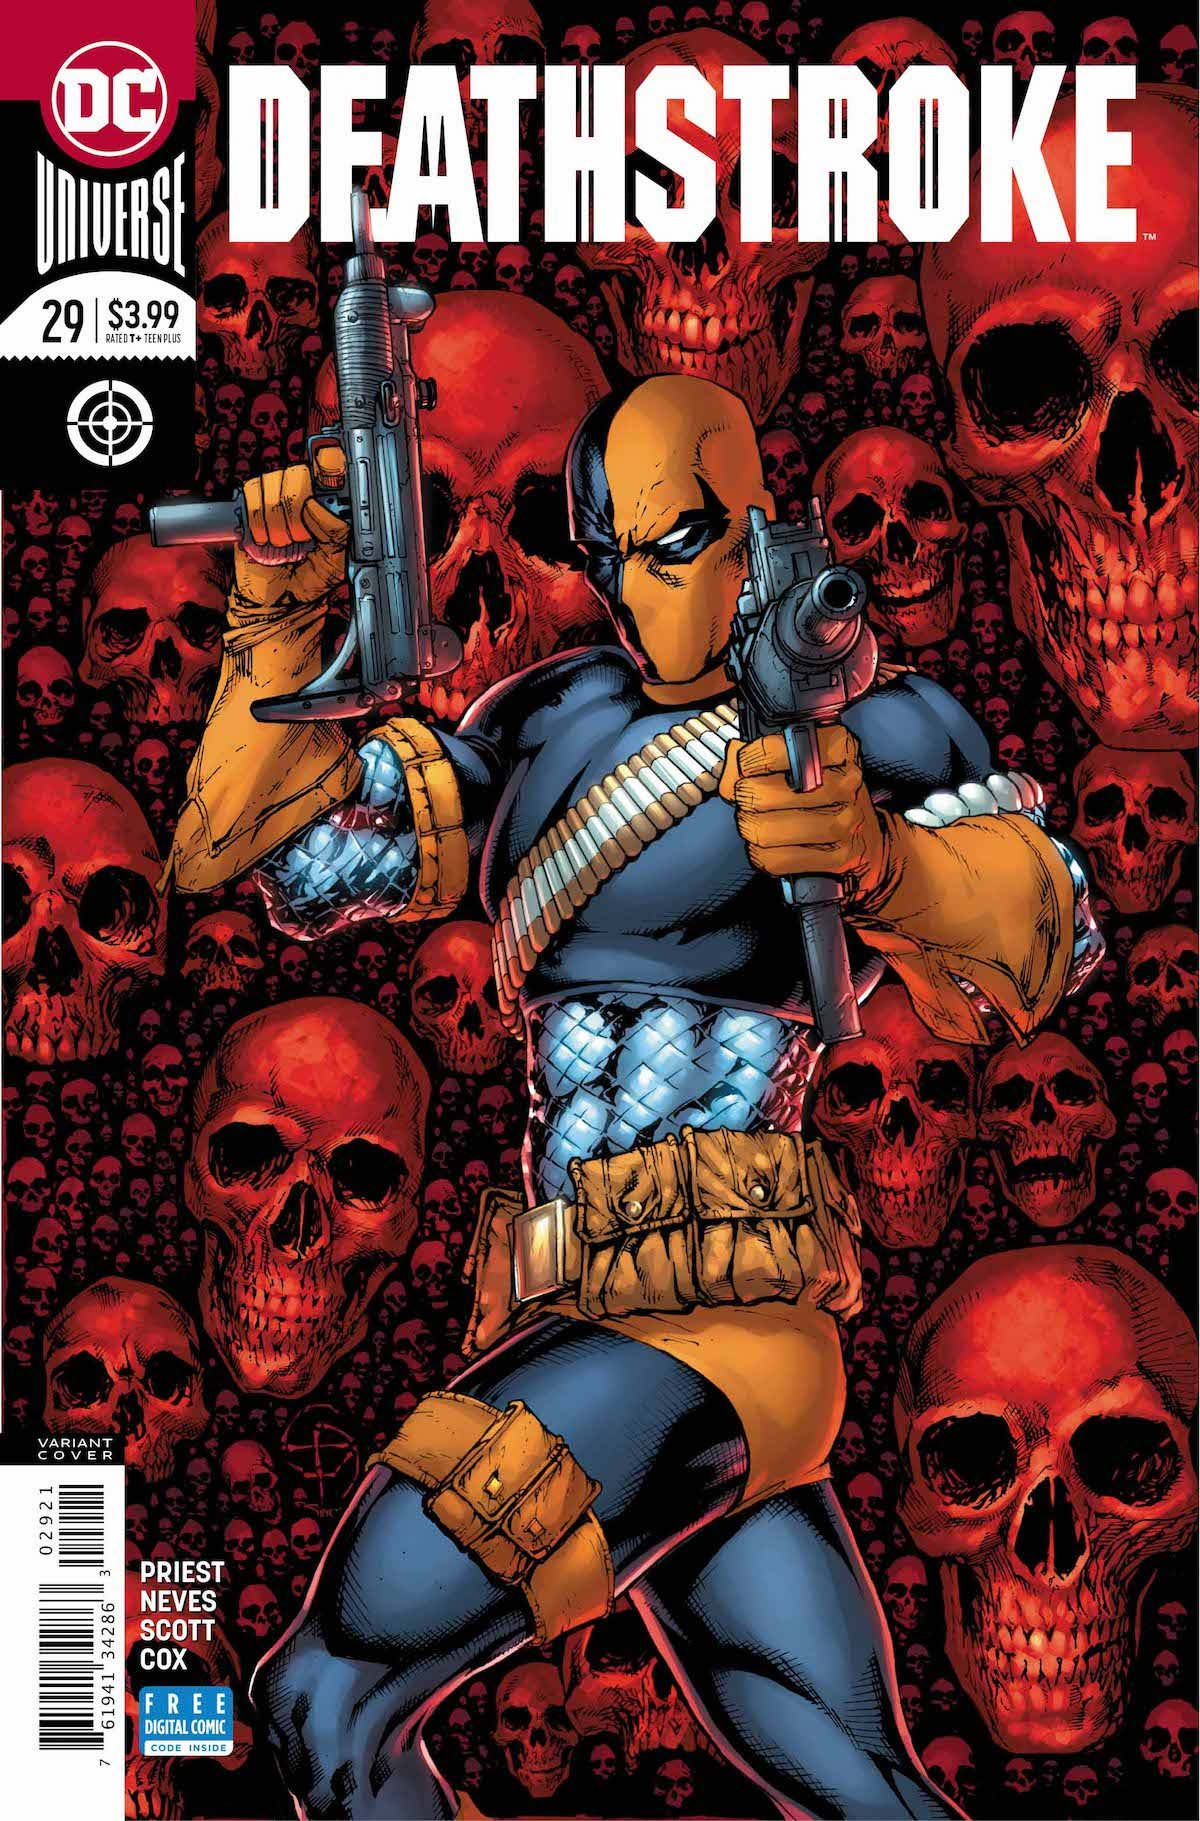 Deathstroke #29 variant cover